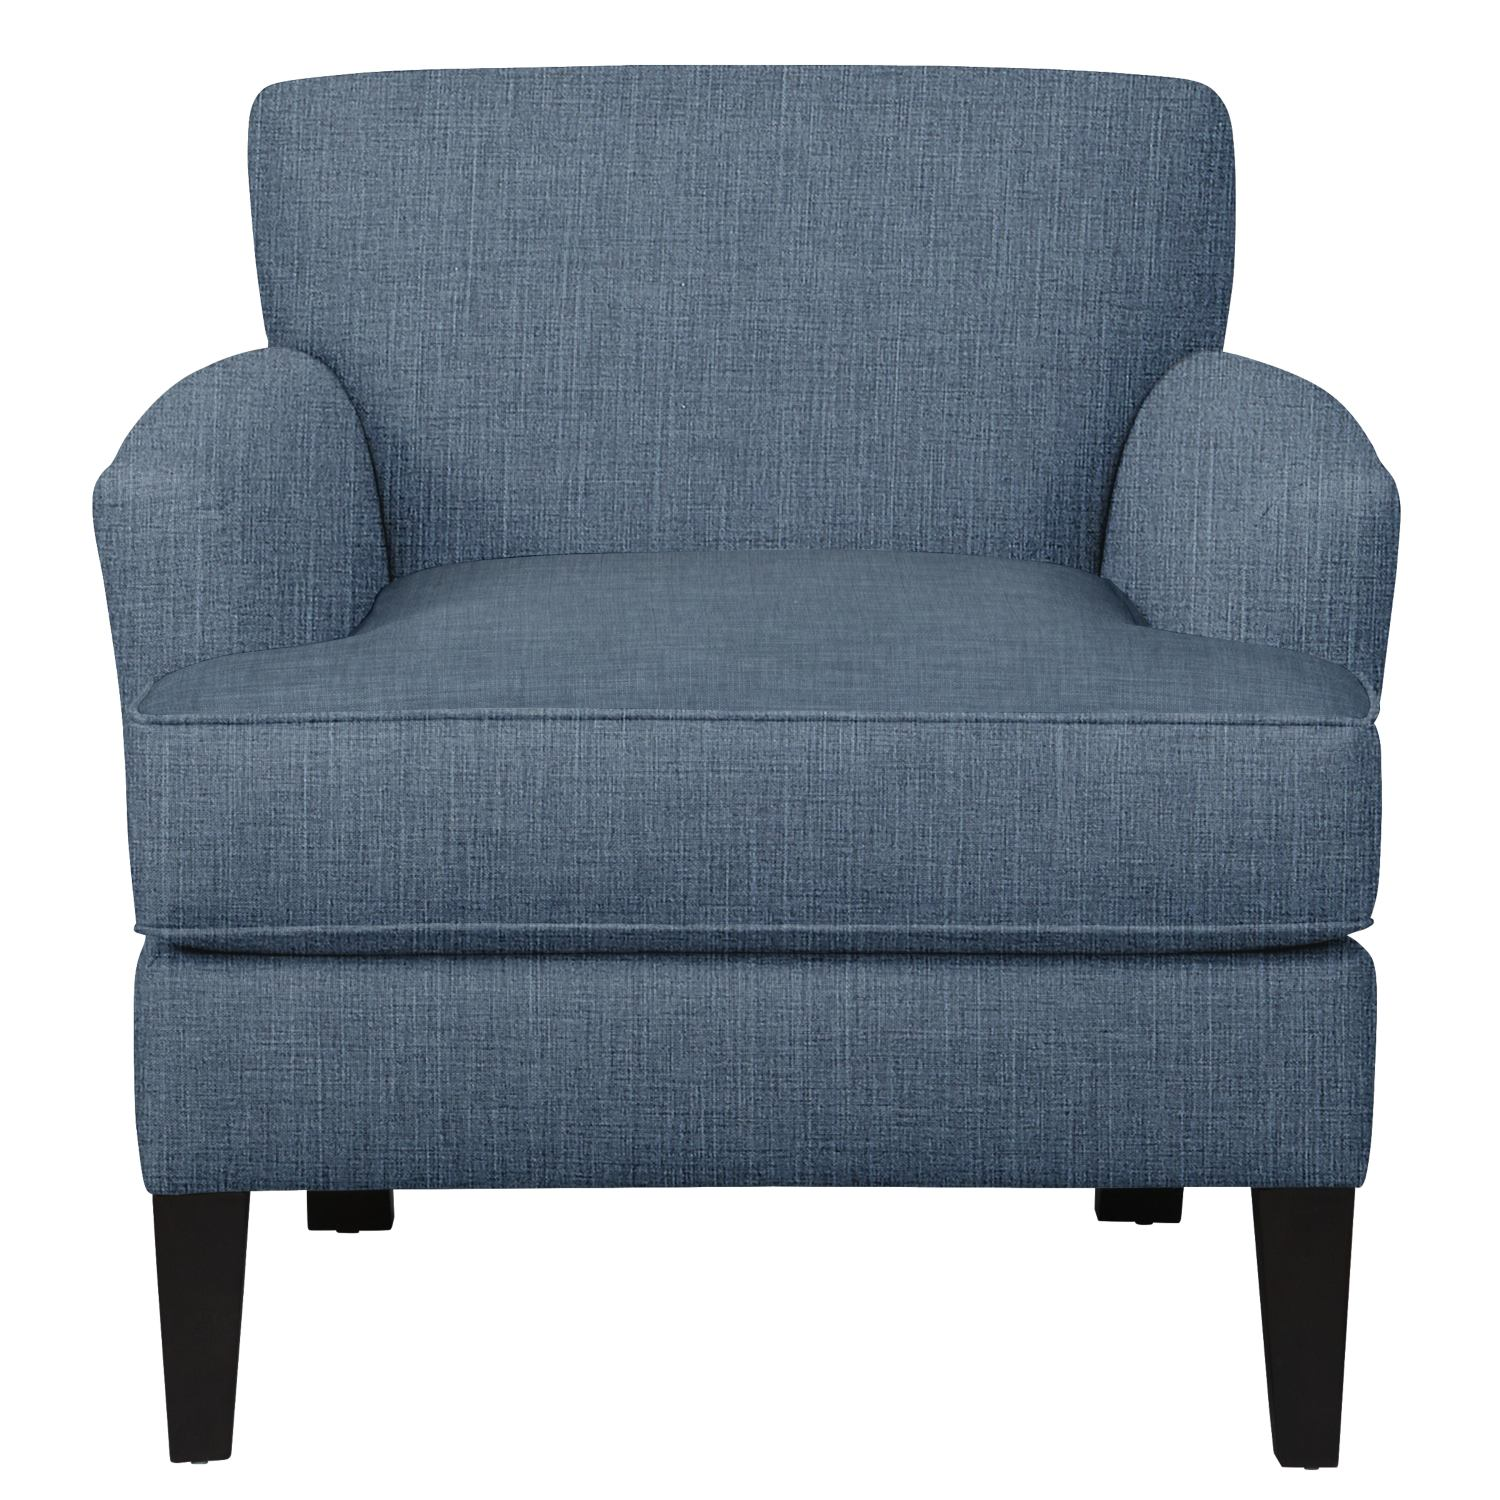 Living Room Furniture - Marcus Chair w/ Milford II Indigo Fabric